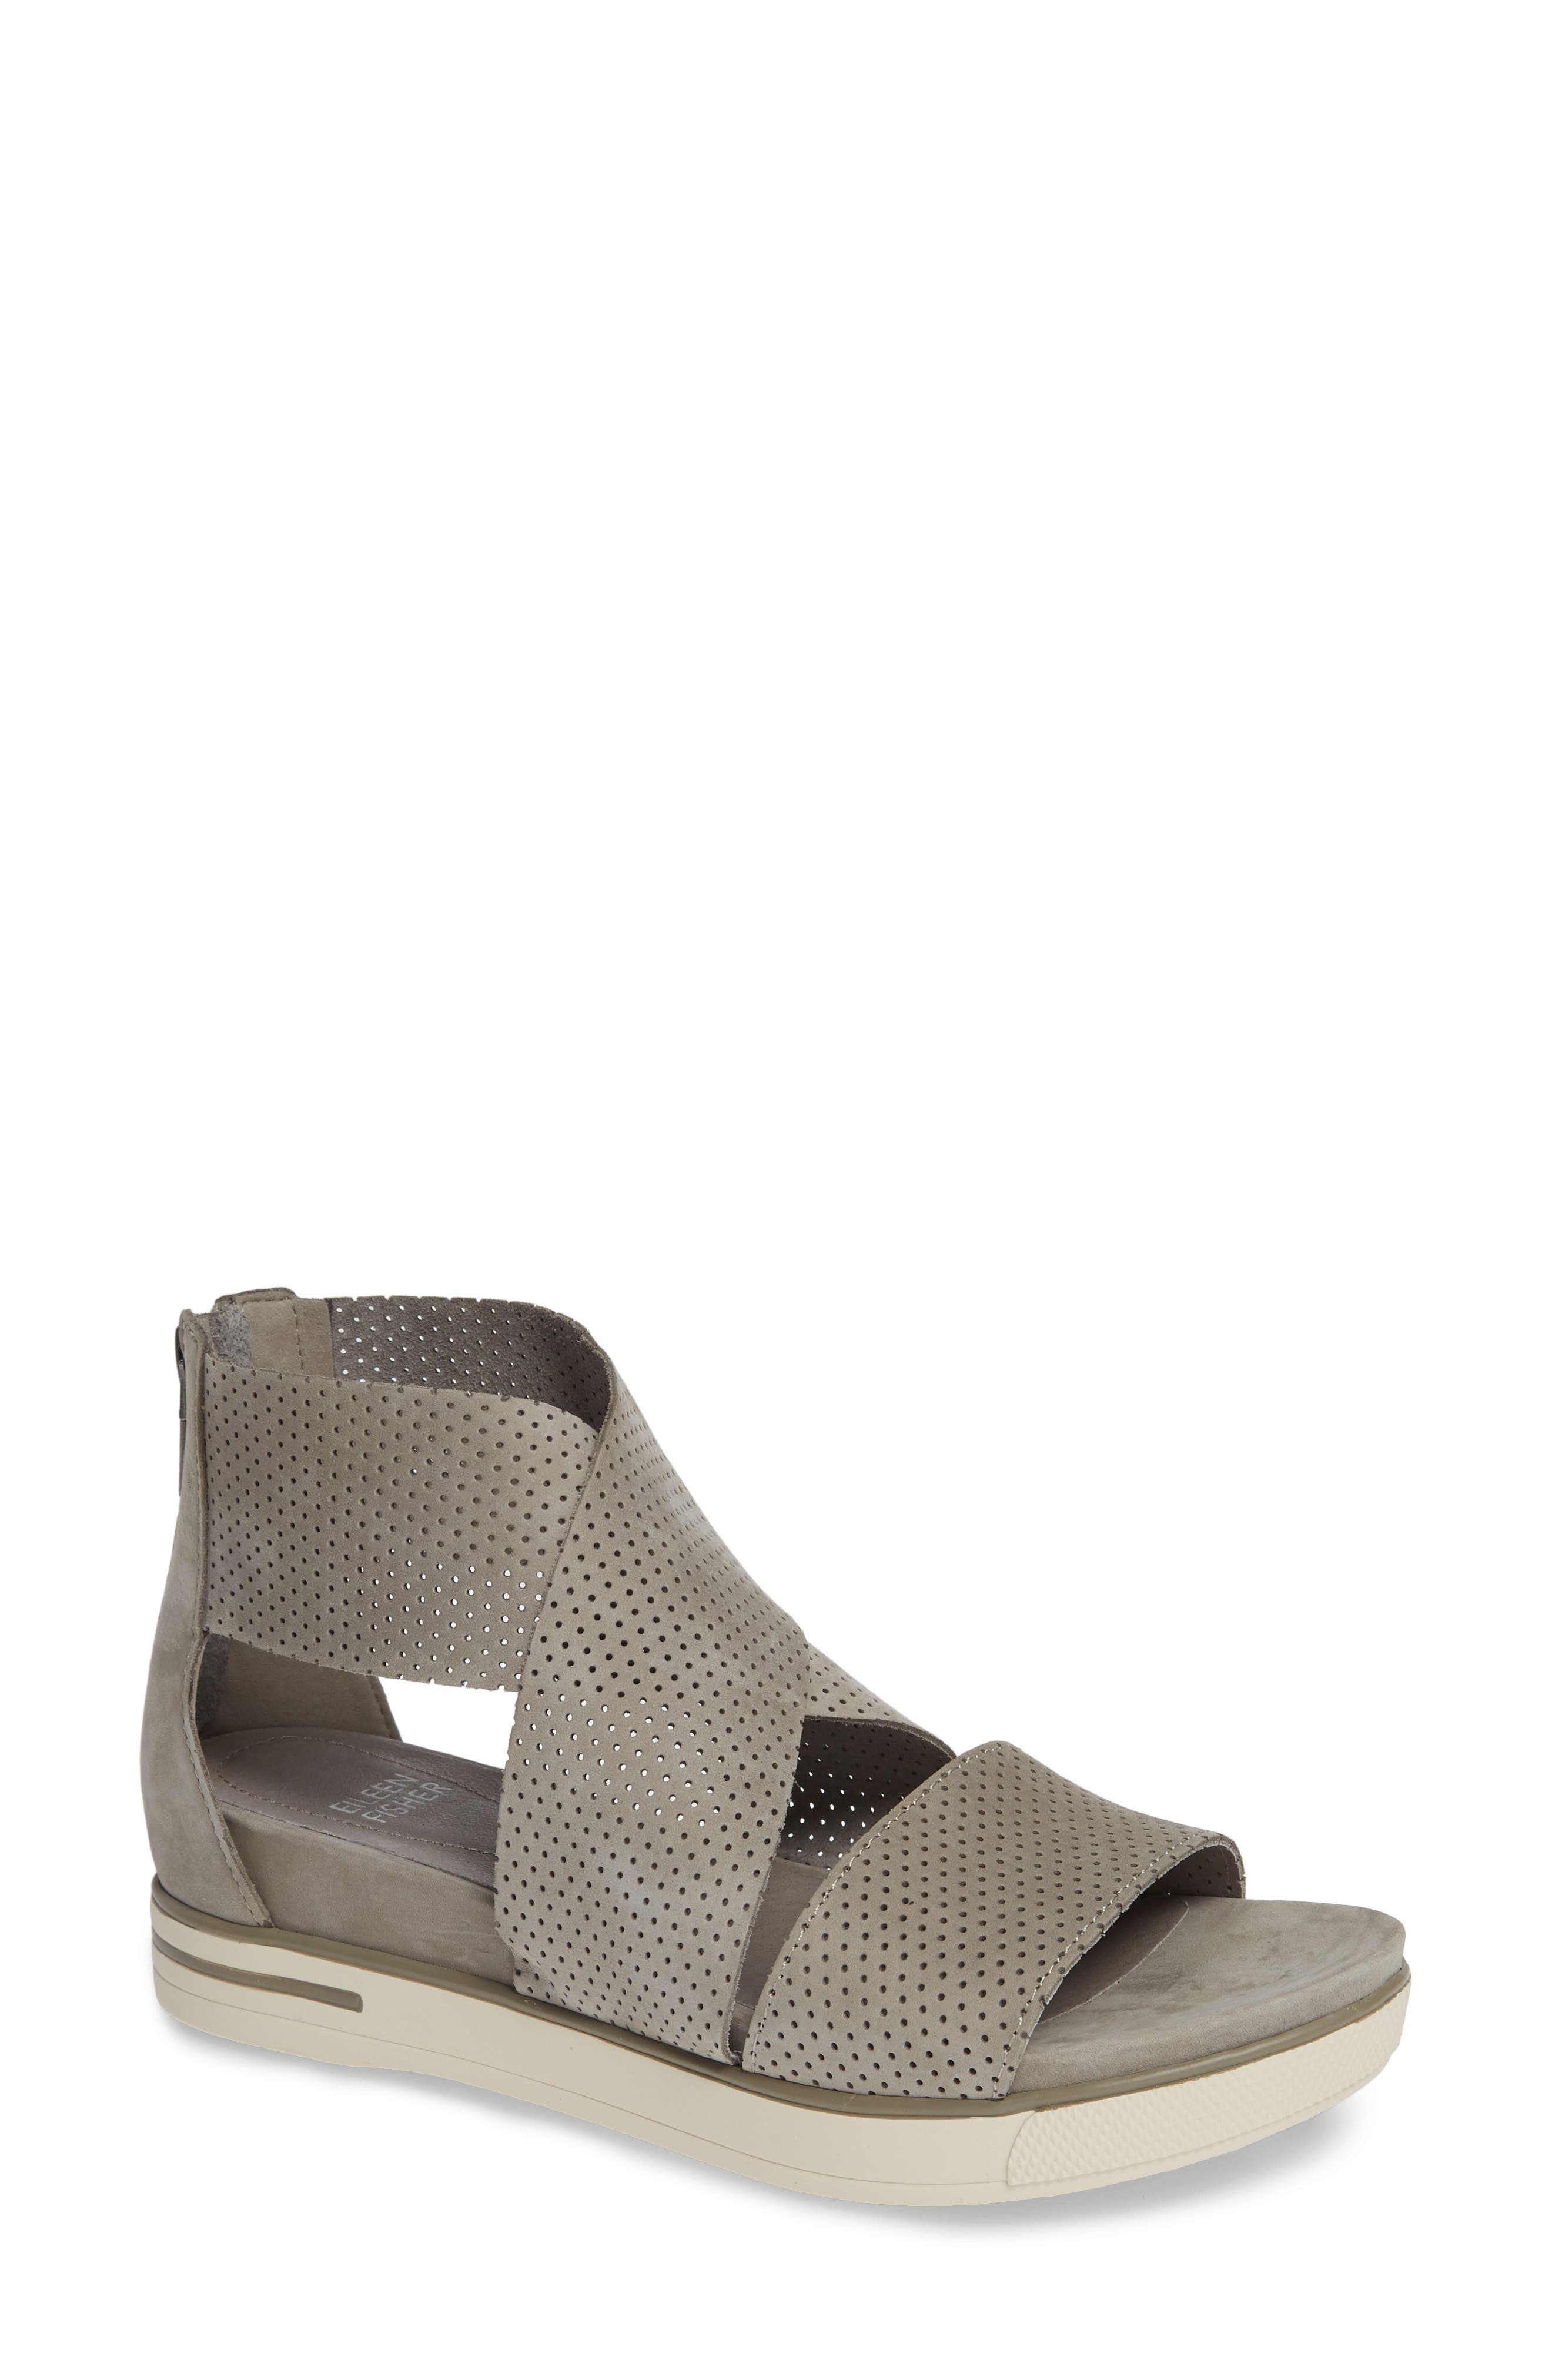 fd4bcc4e366 Eileen Fisher Women s Sandals Clothing